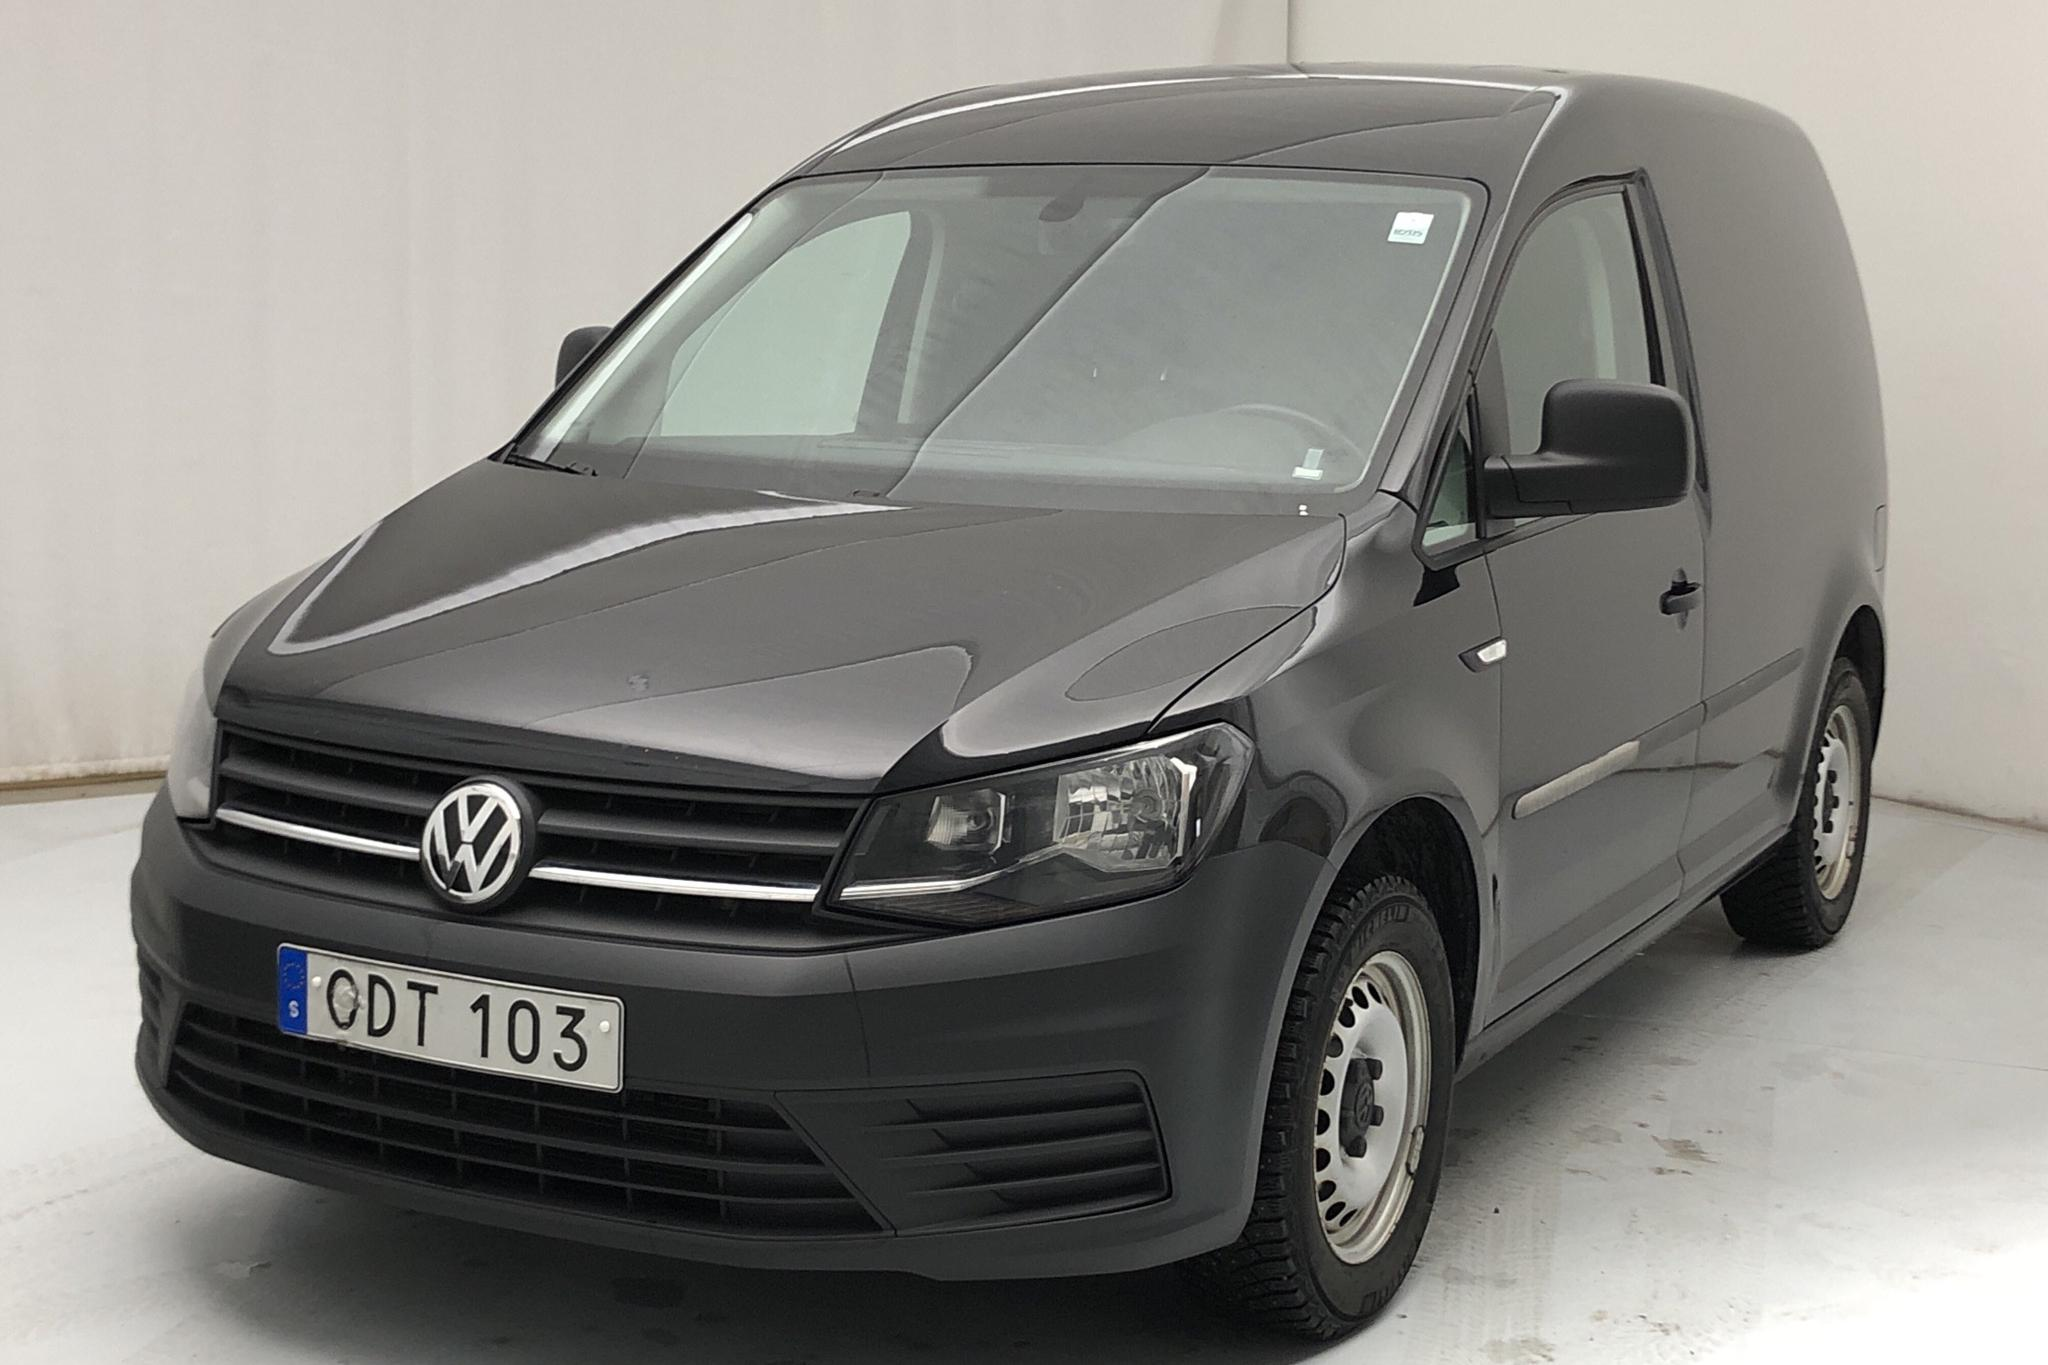 VW Caddy 2.0 TDI Skåp (75hk) - 131 730 km - Manual - black - 2017